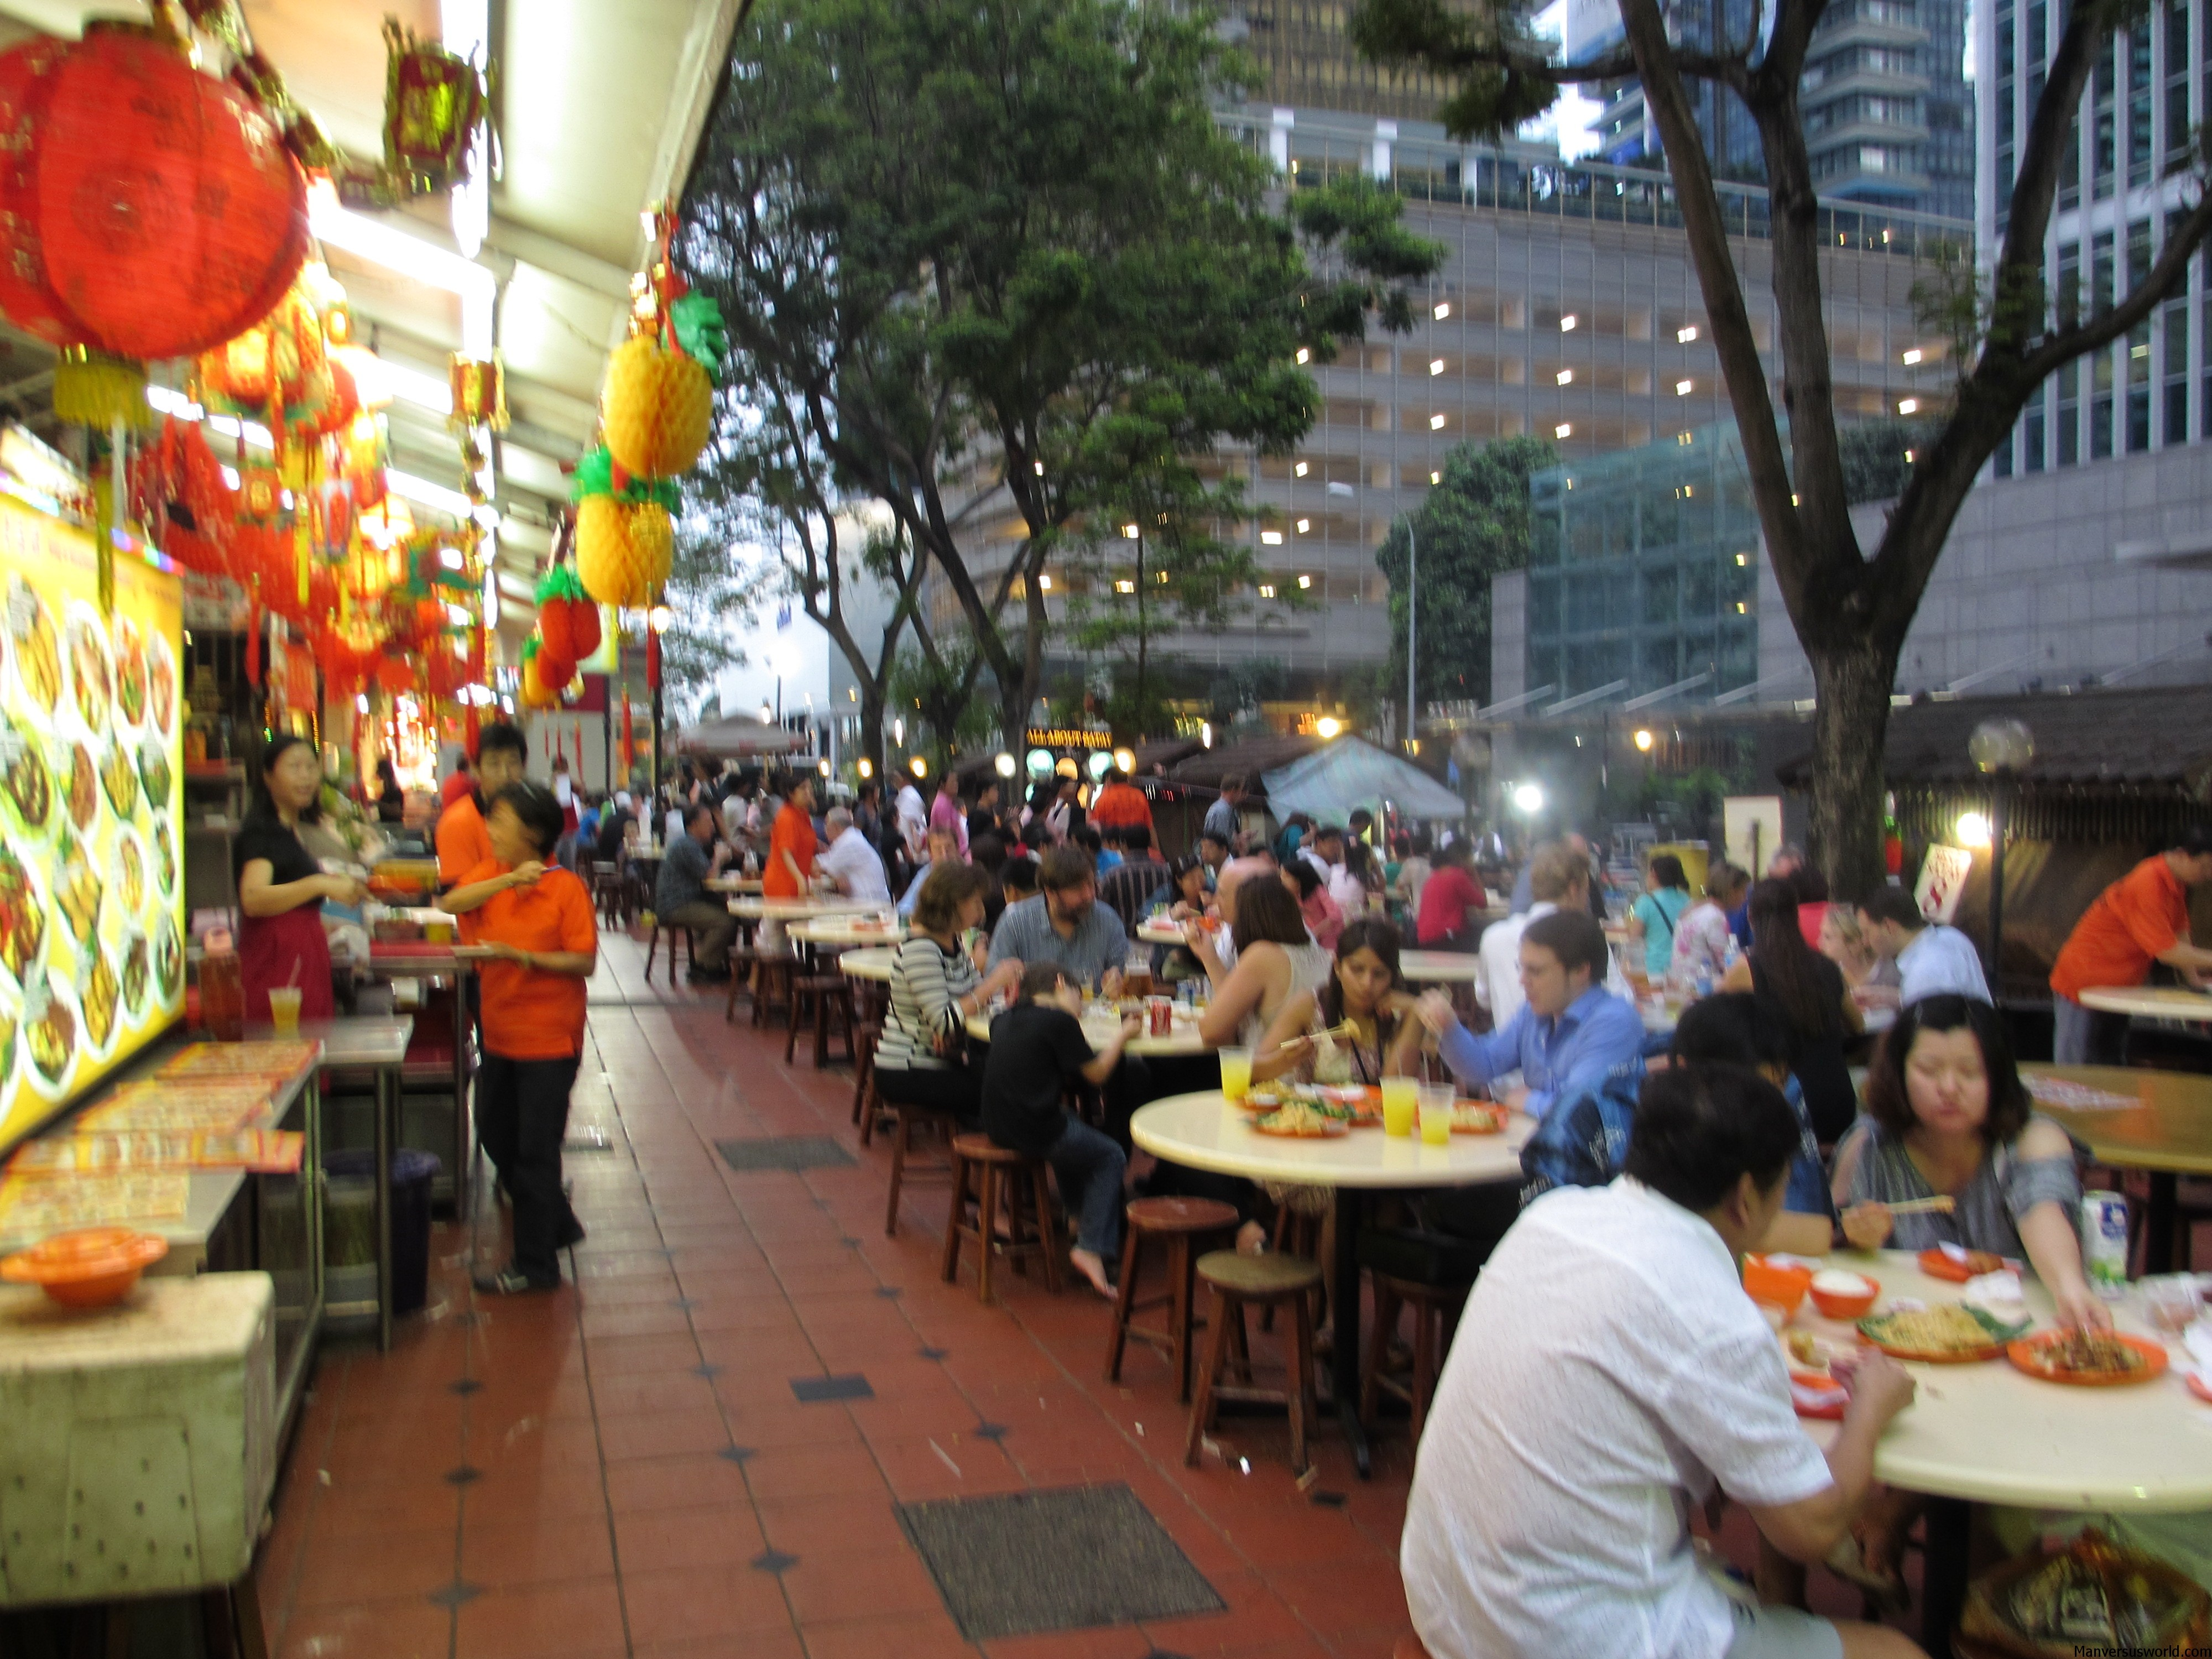 hawker centre at lau pa sat in singapore sells the best satay in town